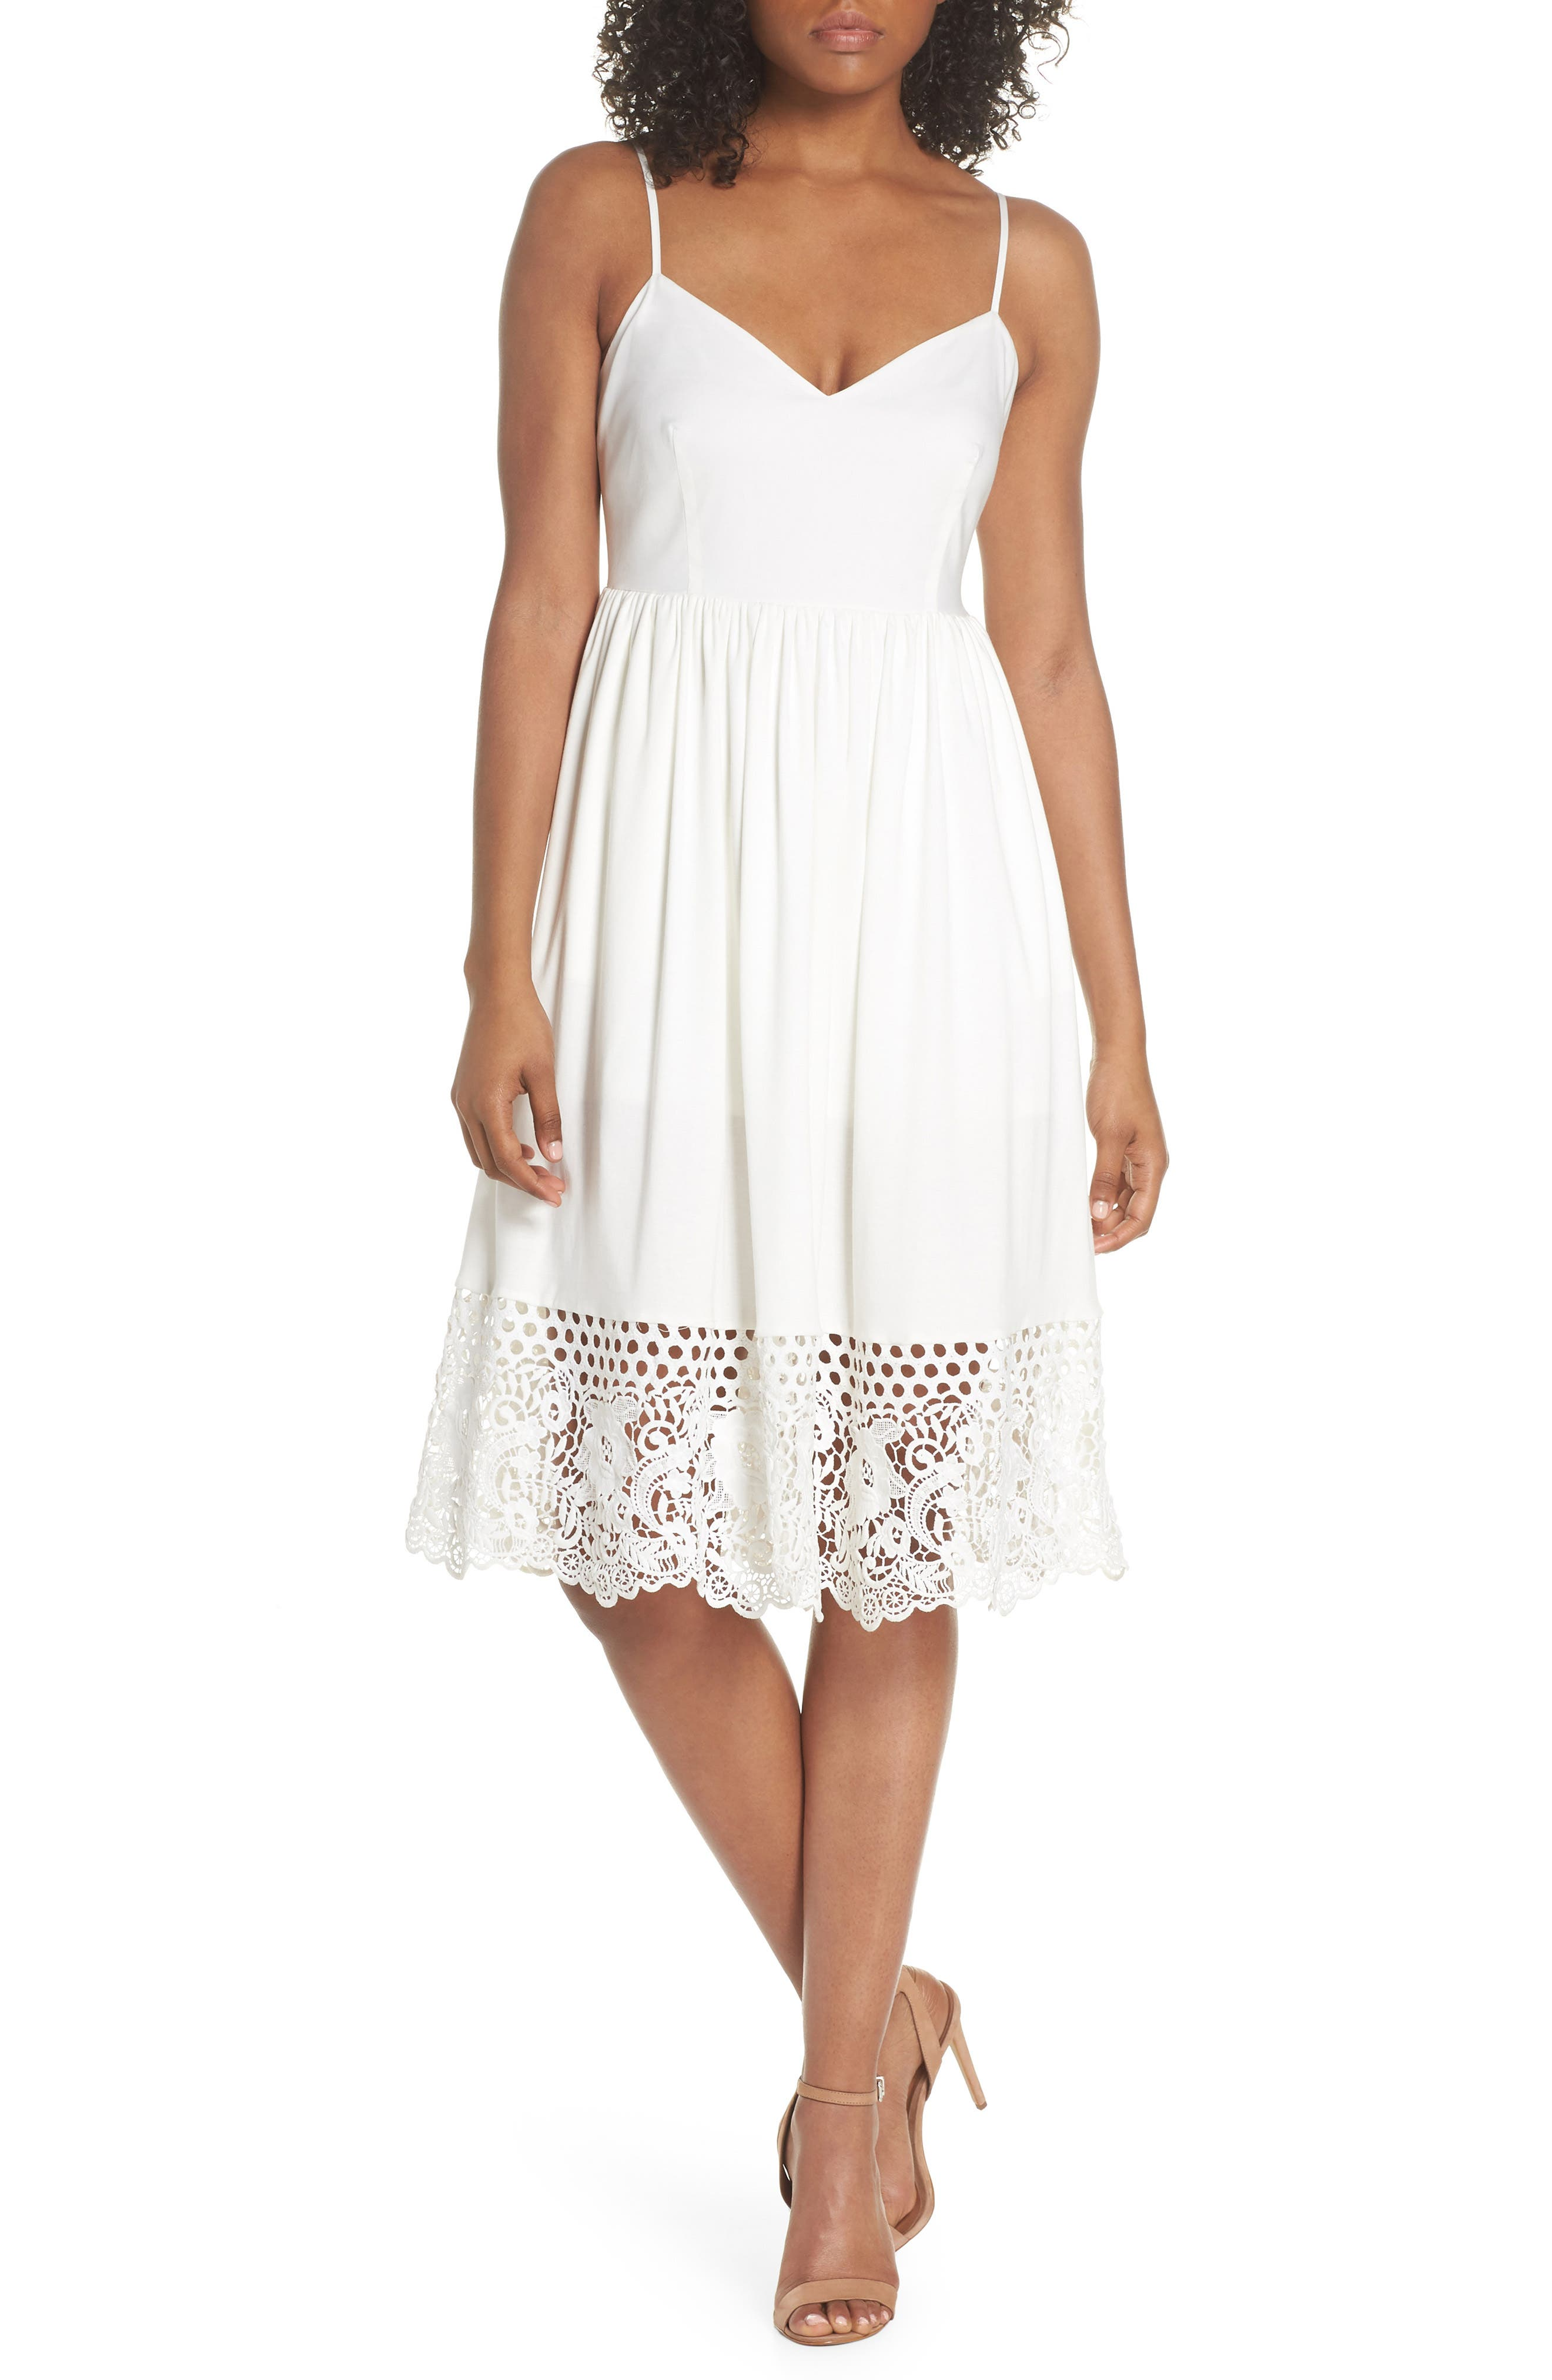 Salerno Lace Trim Jersey Dress,                             Main thumbnail 1, color,                             Summer White/ Summer White